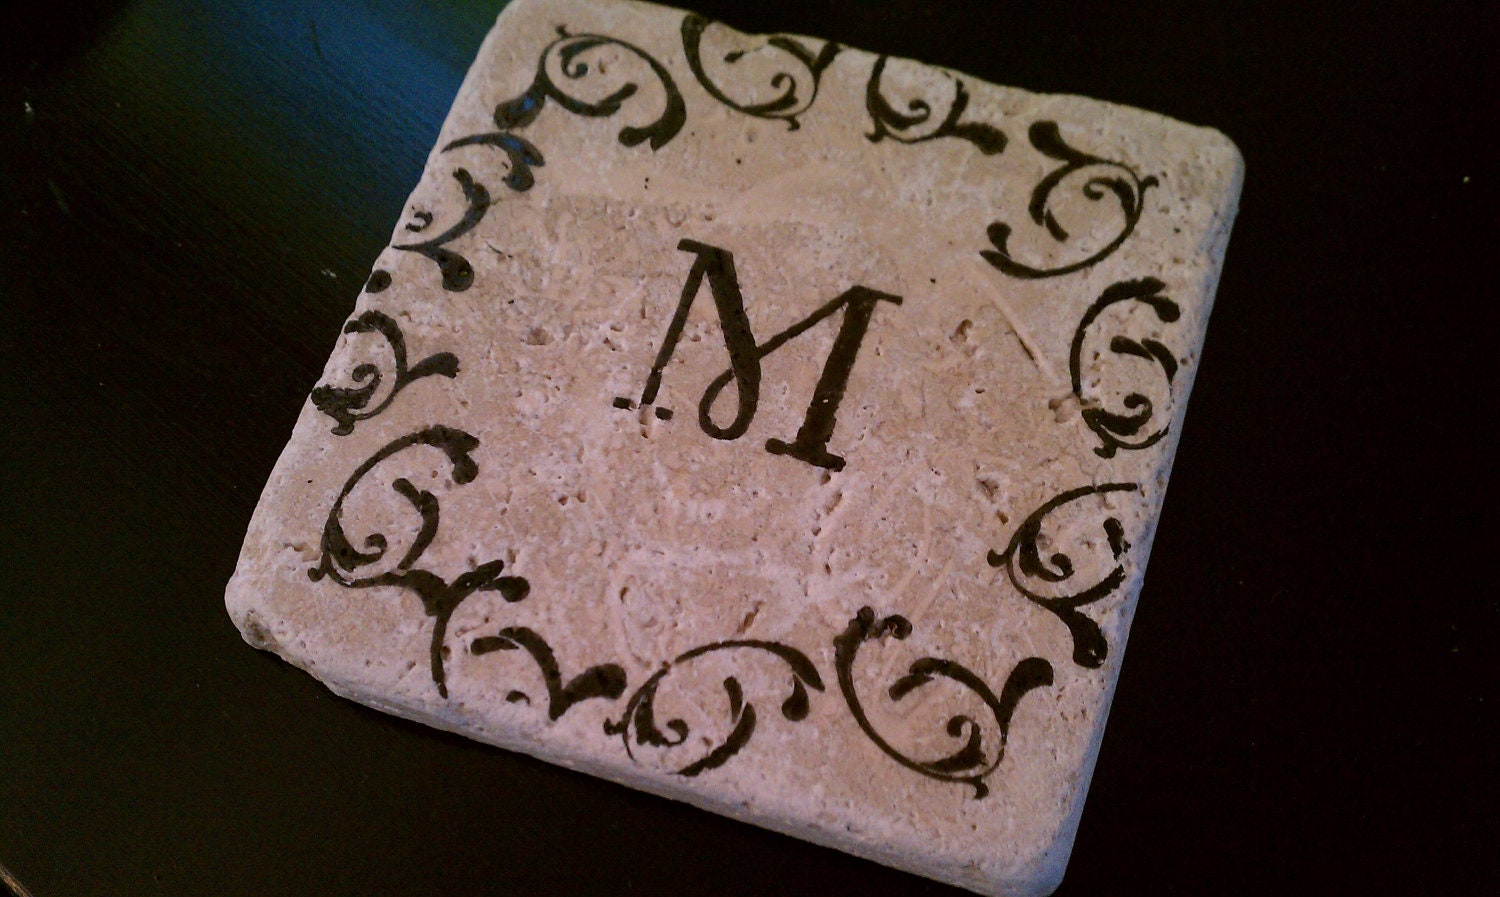 Personalized gift tile coasters 4 x 4 custom for Best coasters for sweaty drinks